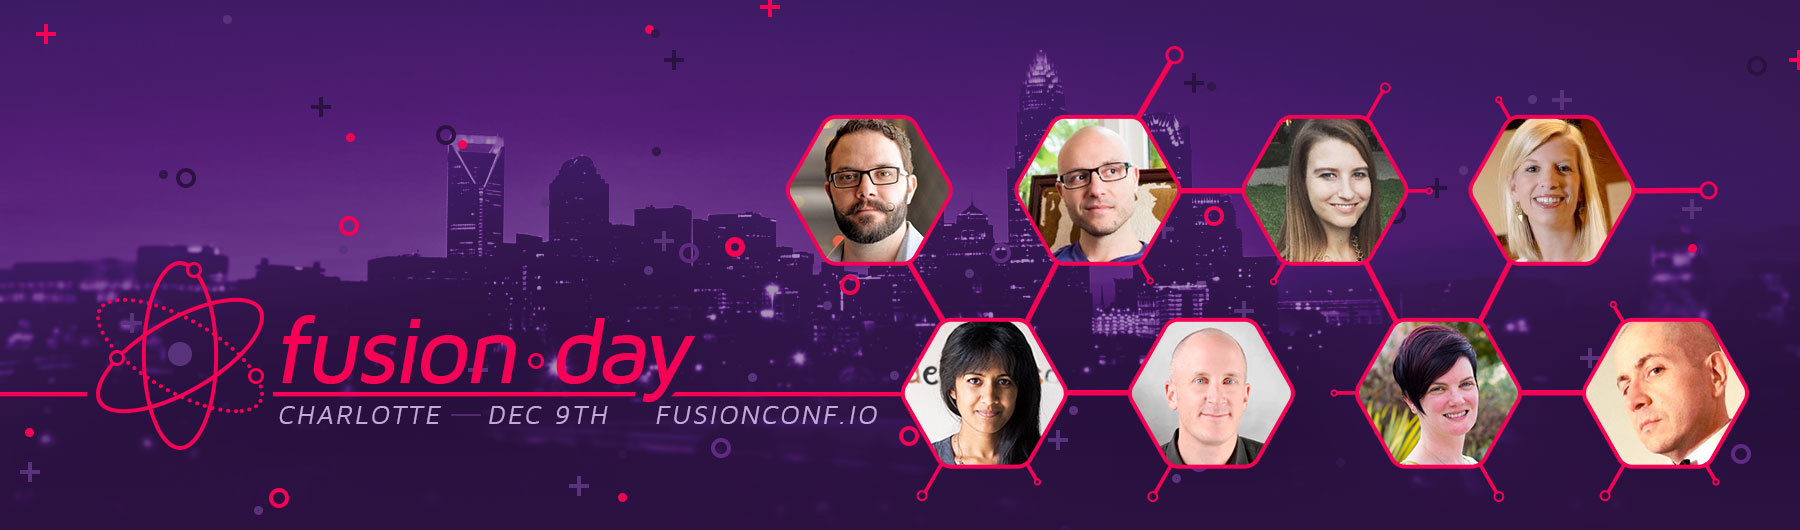 Fusion Day 2016